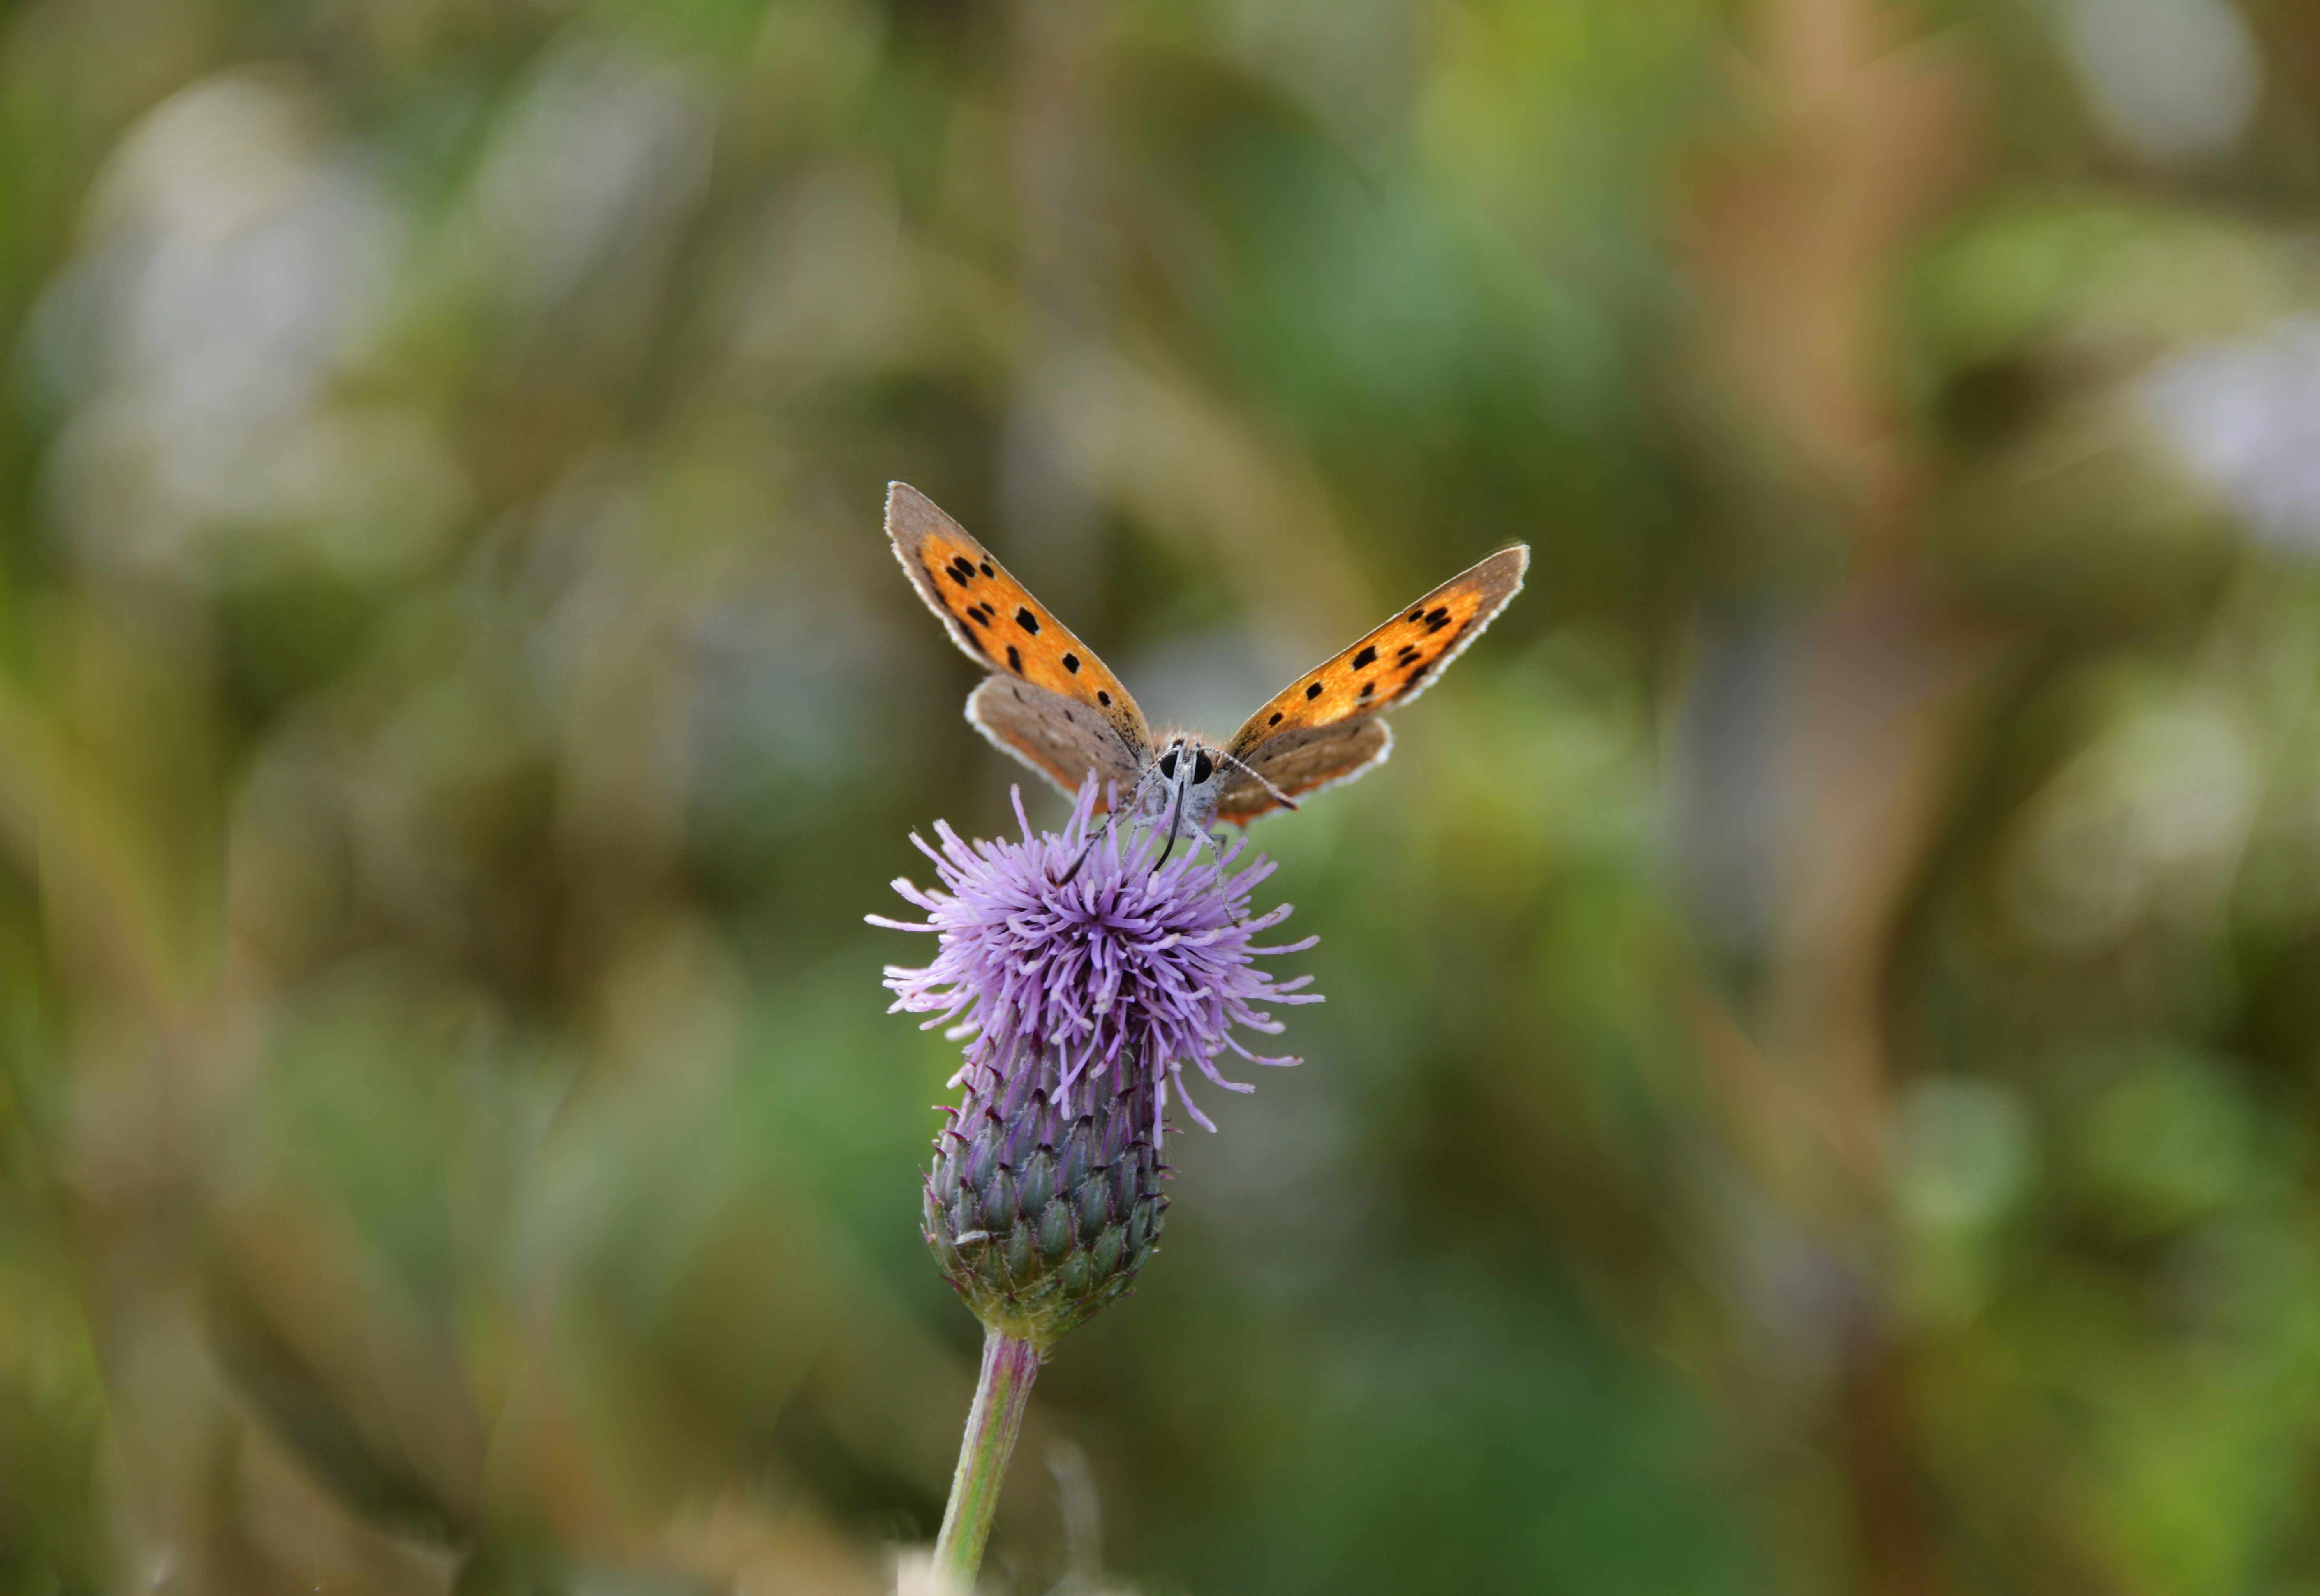 A small copper butterfly taking a drink of nectar from a thistle head flower, summer days.